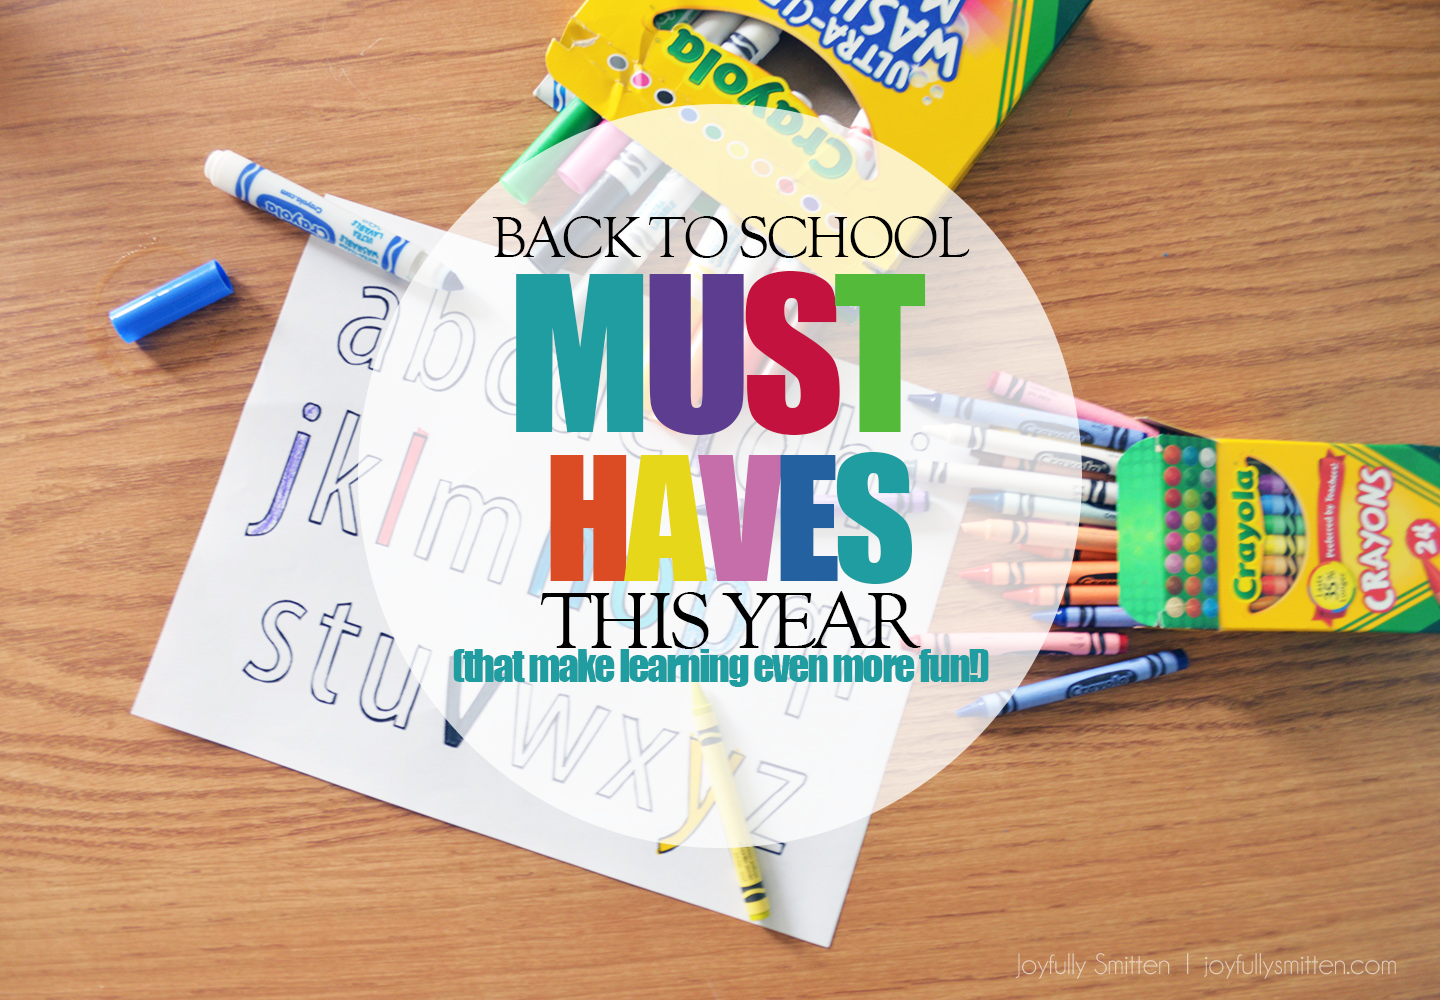 Making Back to School Fun with Crayola